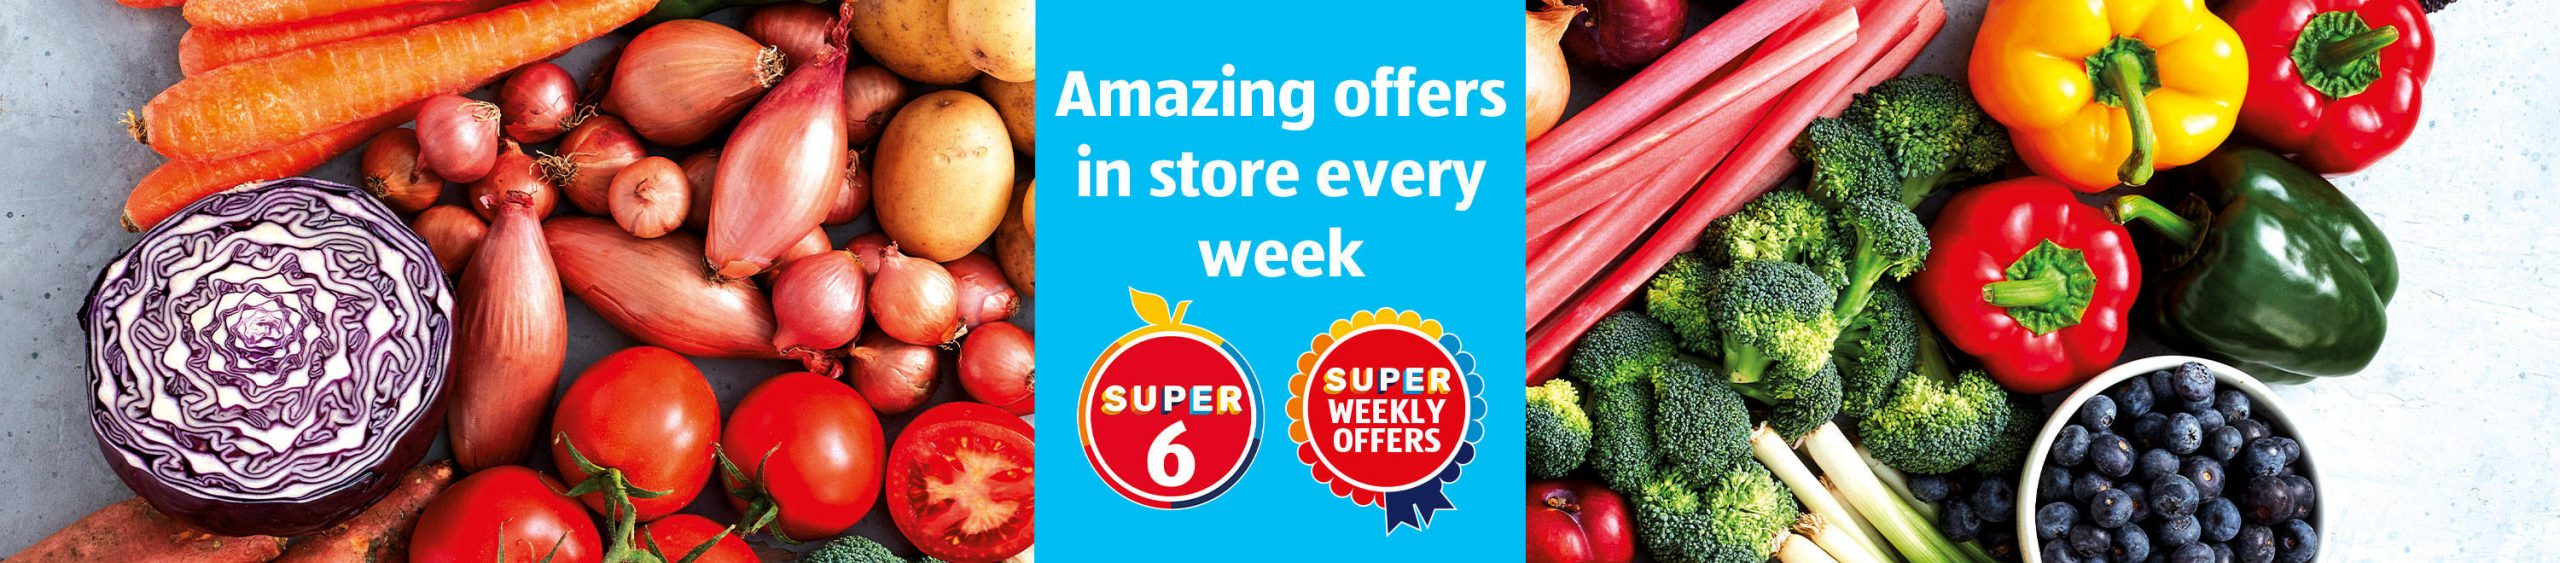 ALDI Super 6 From 28th January 2021 ALDI Weekly Offers Super